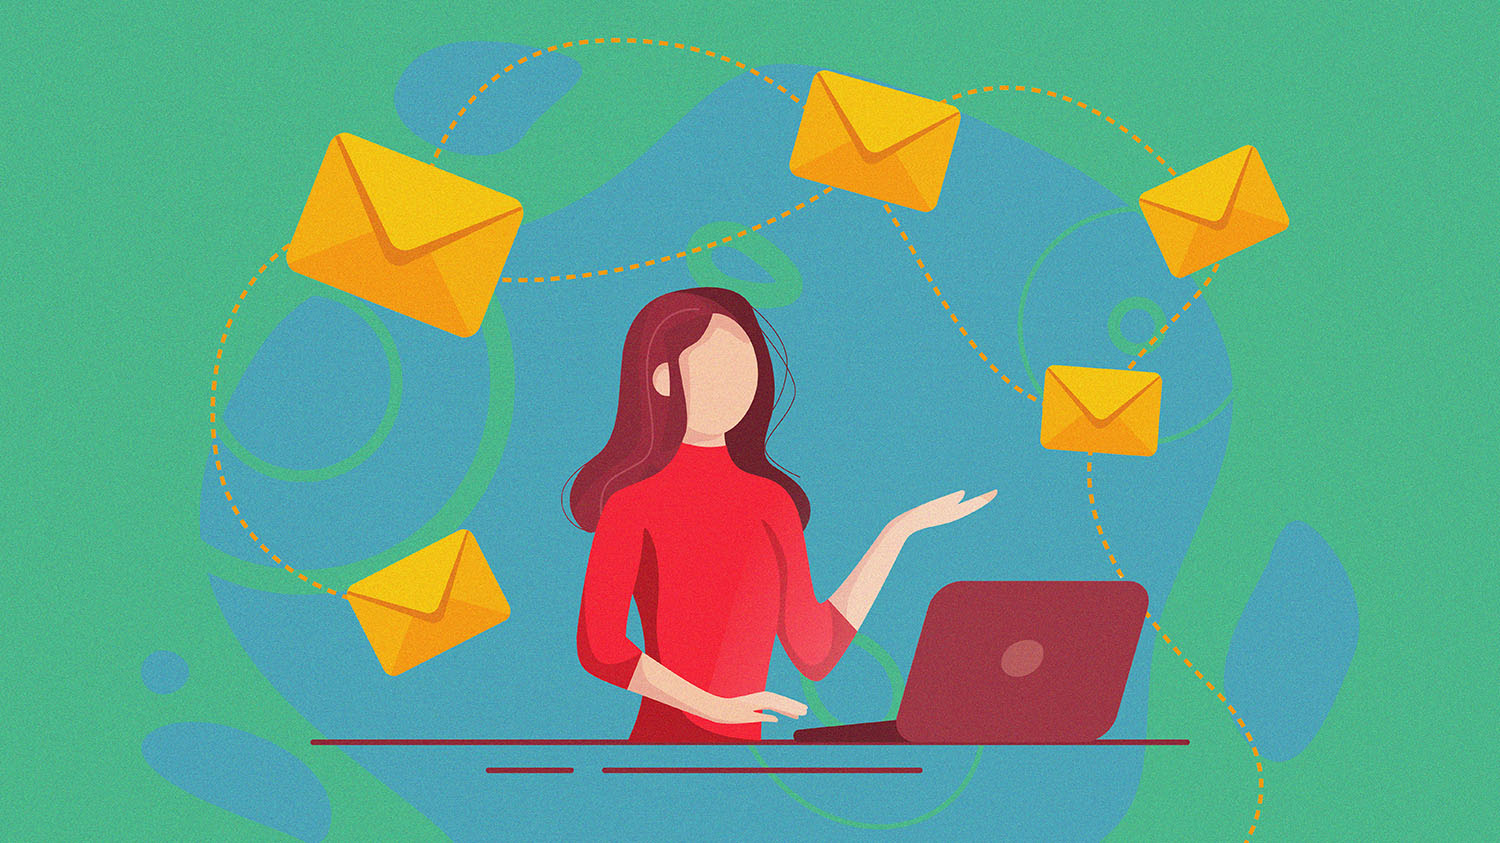 Illustration of a woman with envelopes and a laptop